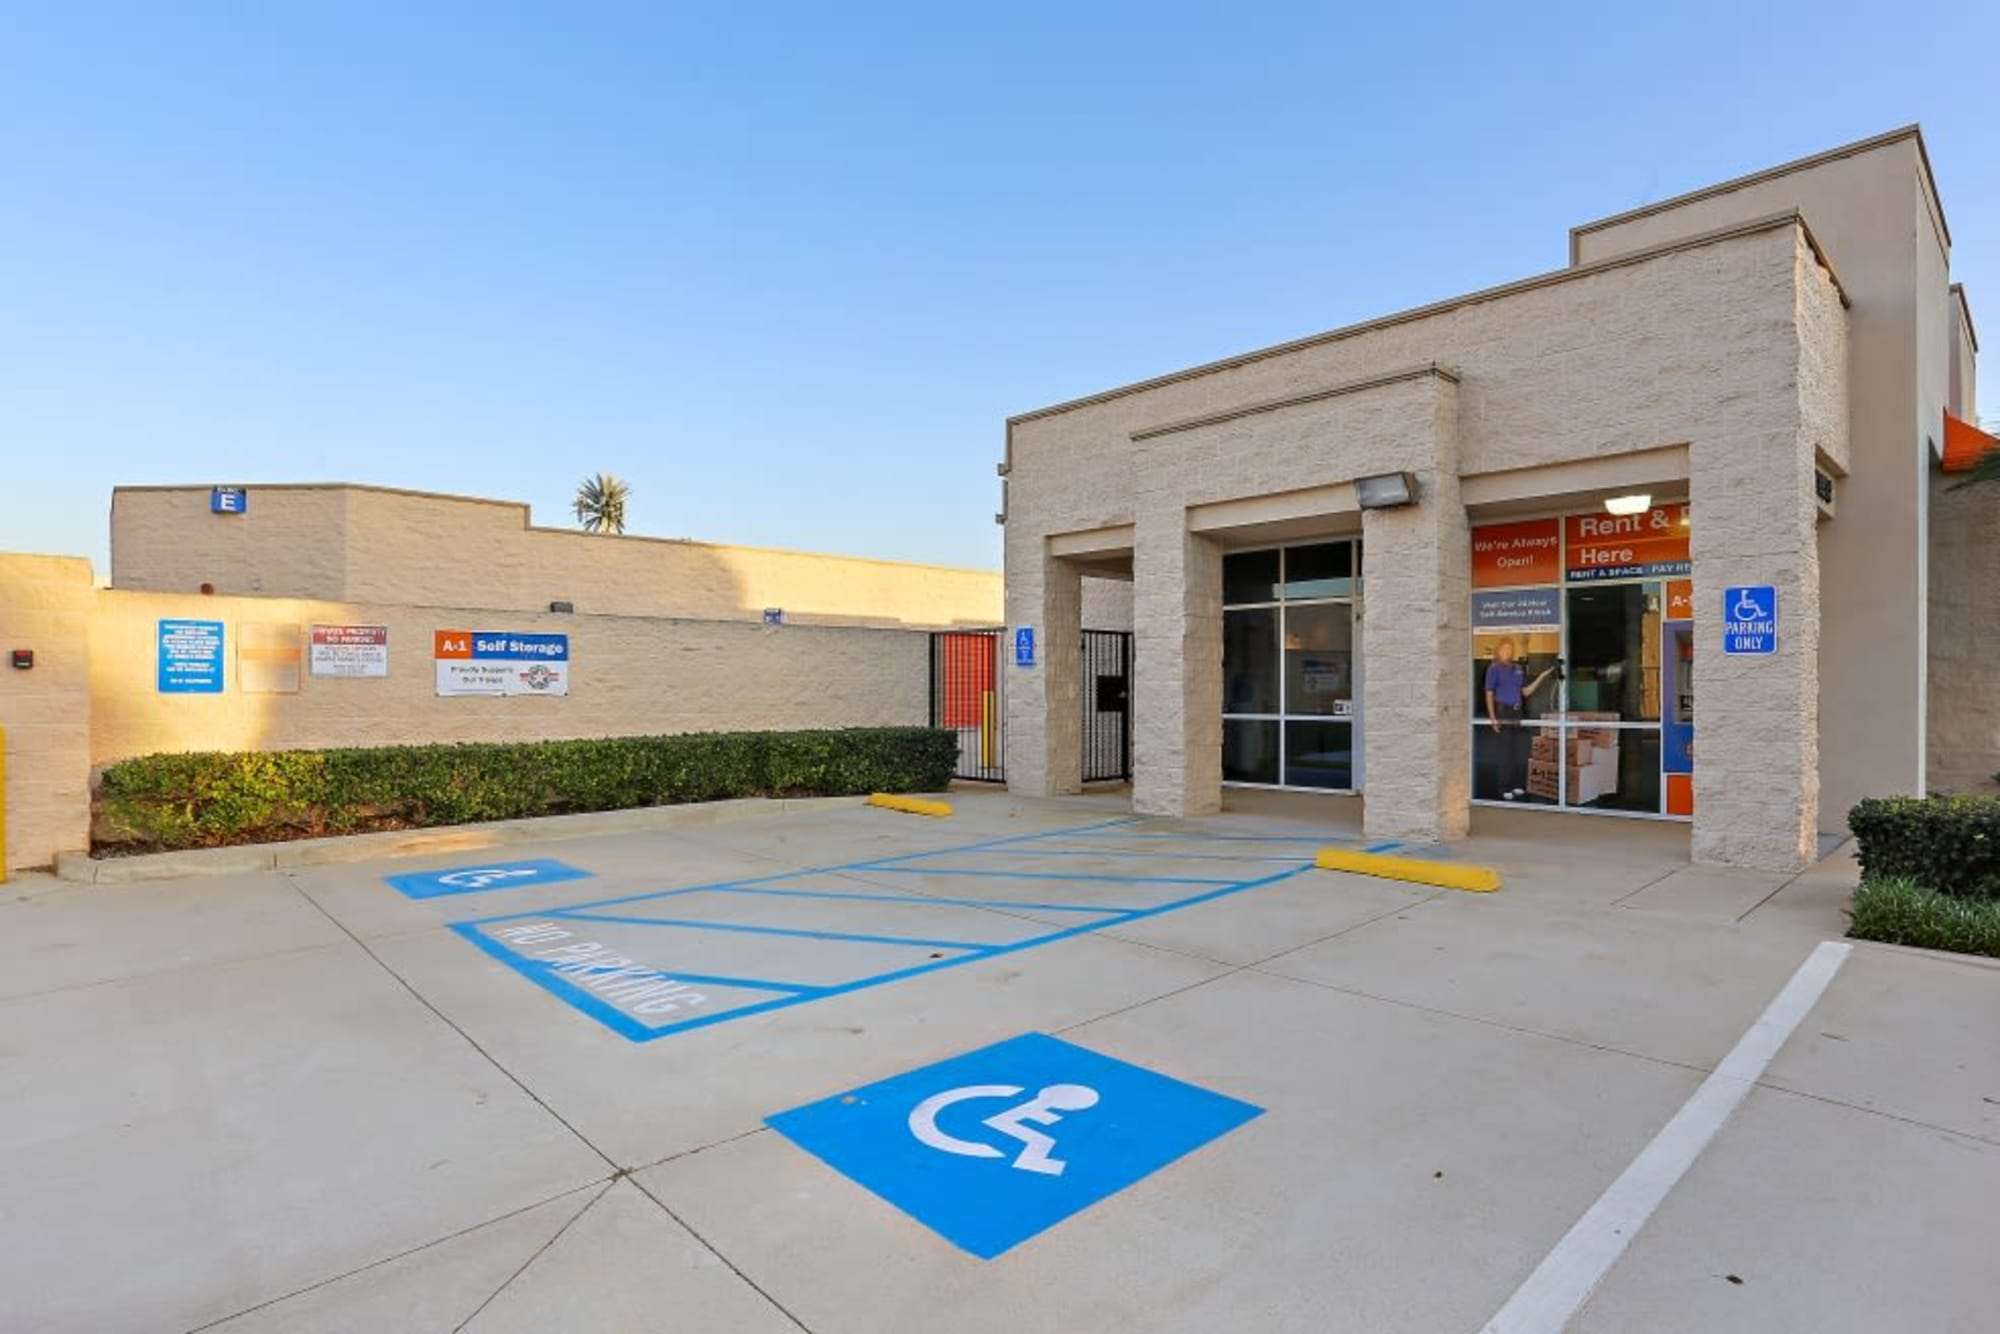 Handicap parking spots and the front entry to A-1 Self Storage in Huntington Beach, California